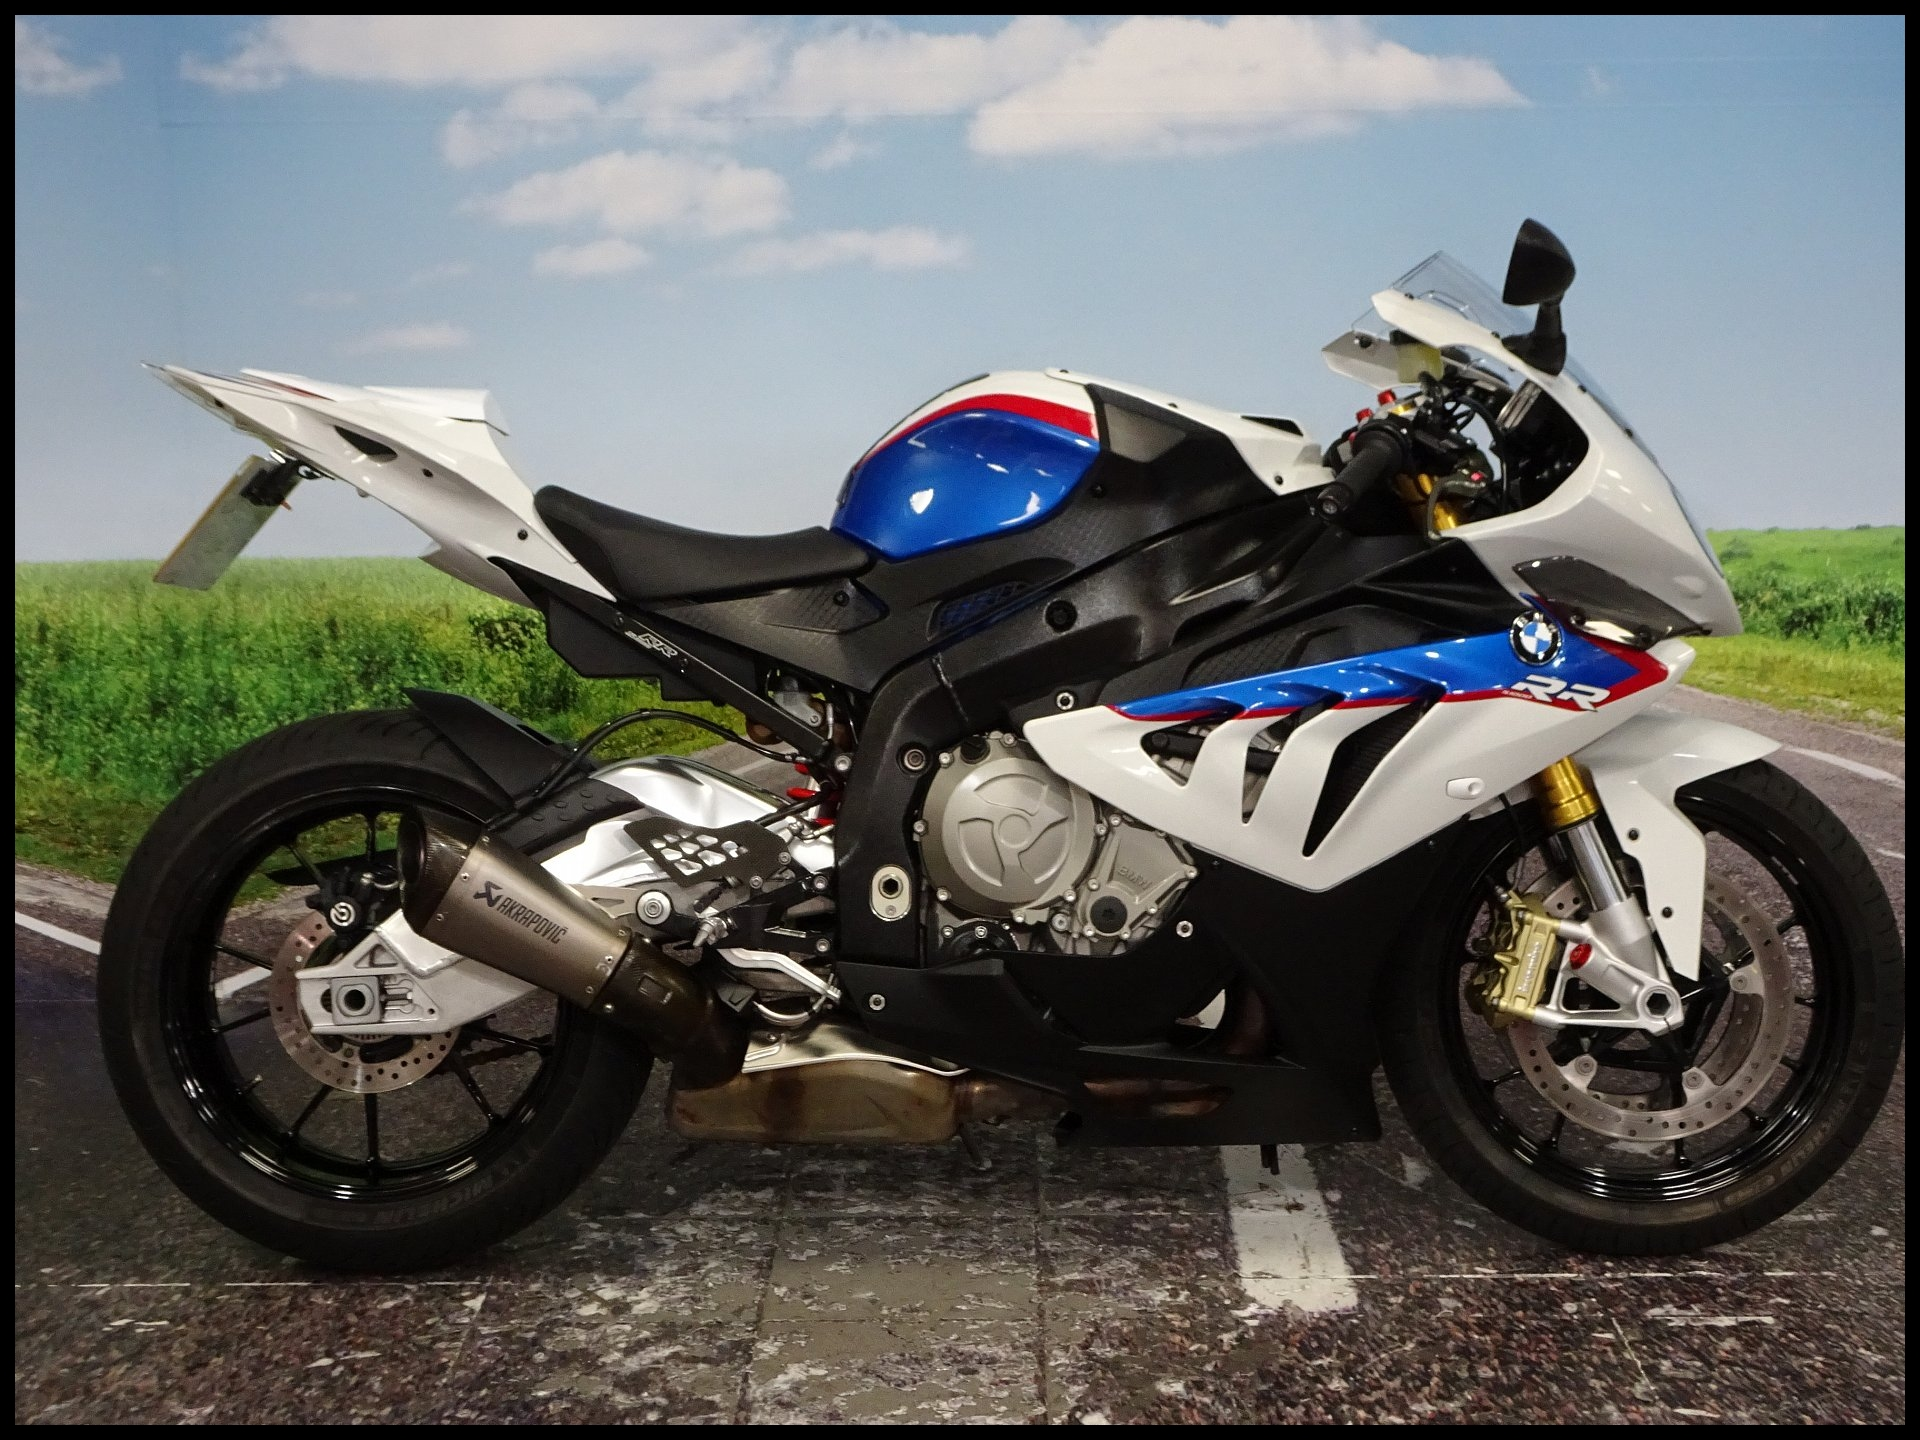 BMW S1000RR for sale Finance available and part exchange wel e CMC Motorcycles